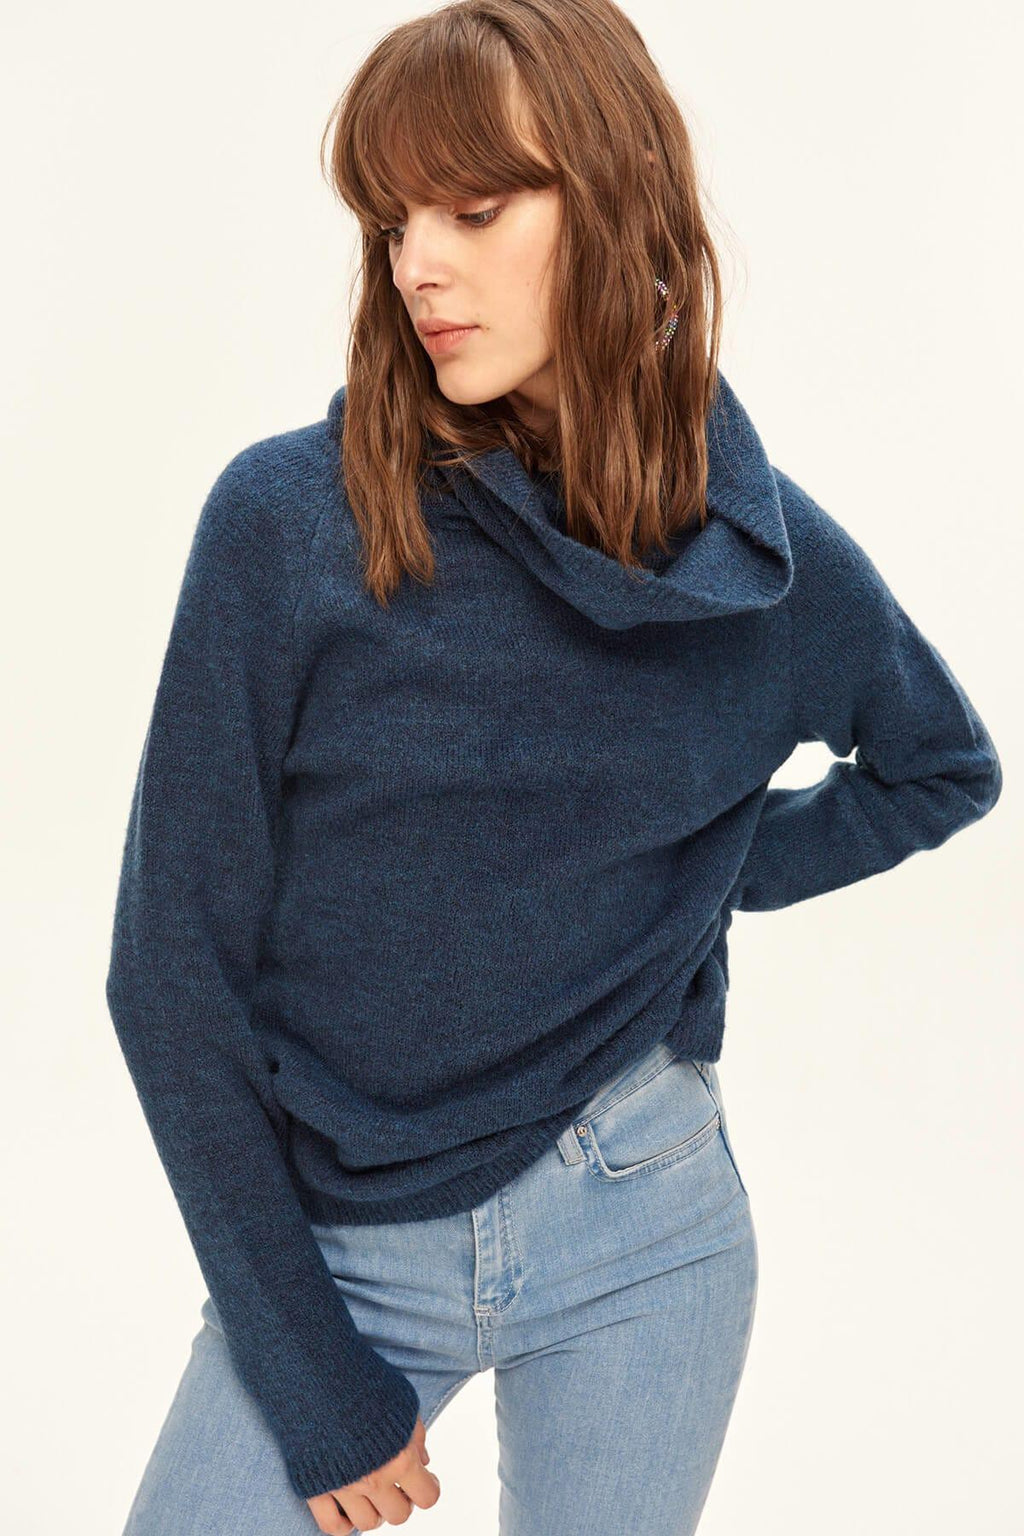 Women Navy Blue Turtleneck Sweater